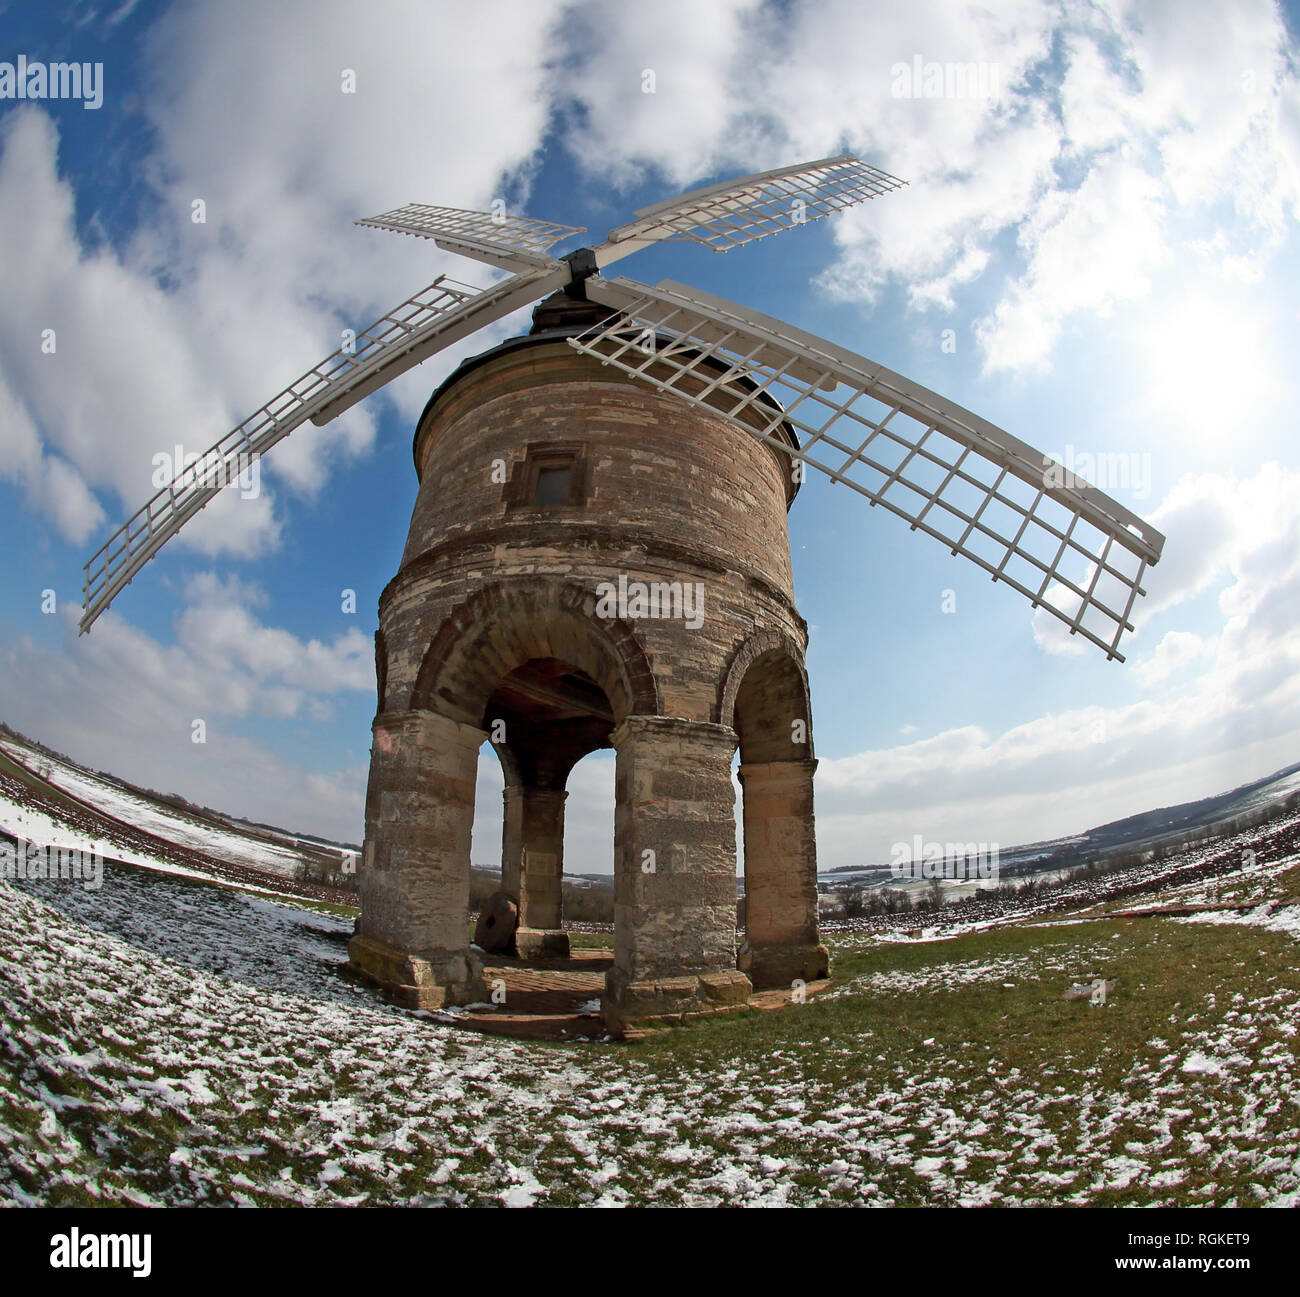 GoTonySmith,@HotpixUK,HotpixUK,Warwickshire,Warwick,famous,tourist,tourism,landmark,heritage,culture,Windmill Hill,Ln,Leamington Spa,CV33 9LB,Grade I Listed,listed building,Chesterton Windmill,Windmill Hill Ln,Leamington,Spa,CV33,9LB,icon,iconic,countryside,snowy,wide,wide angle,hilltop,hill,hill top,walks,Chesterton,village,Roman,architect,tower mill,moving parts,limestone,sandstone,arched,tower